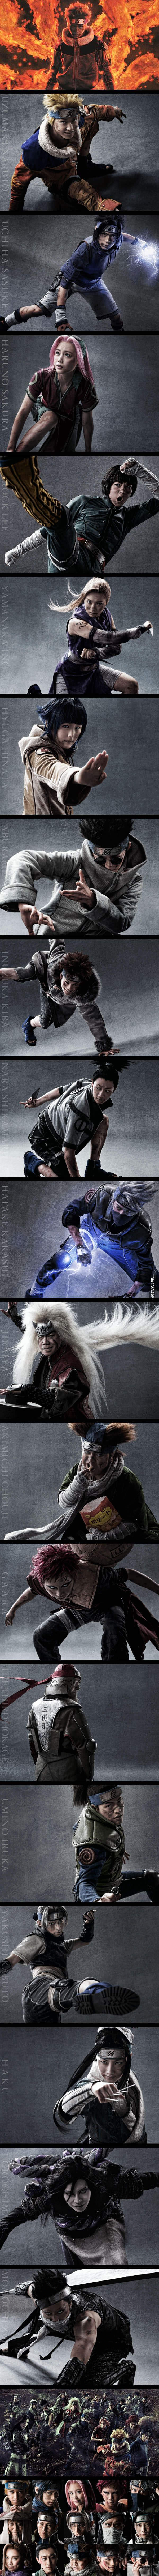 Cast Visuals Of Naruto Live-Action Naruto Stage Play. I am so unsure how to feel about this....